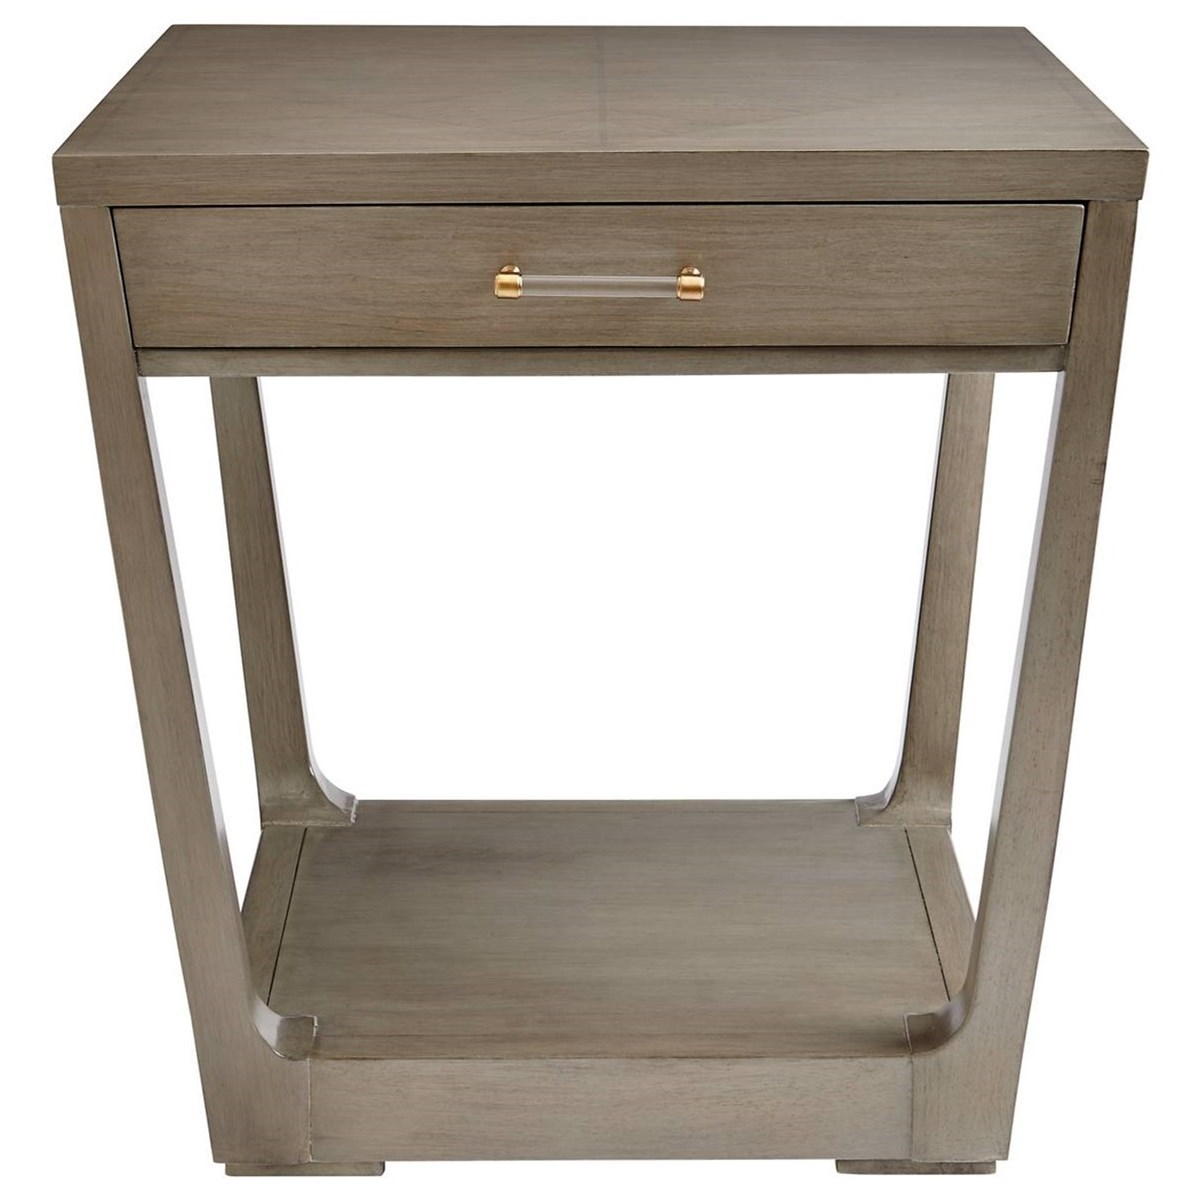 Stanley Furniture Coastal Living Oasis Meridian Square Lamp Table - Item Number: 527-65-14